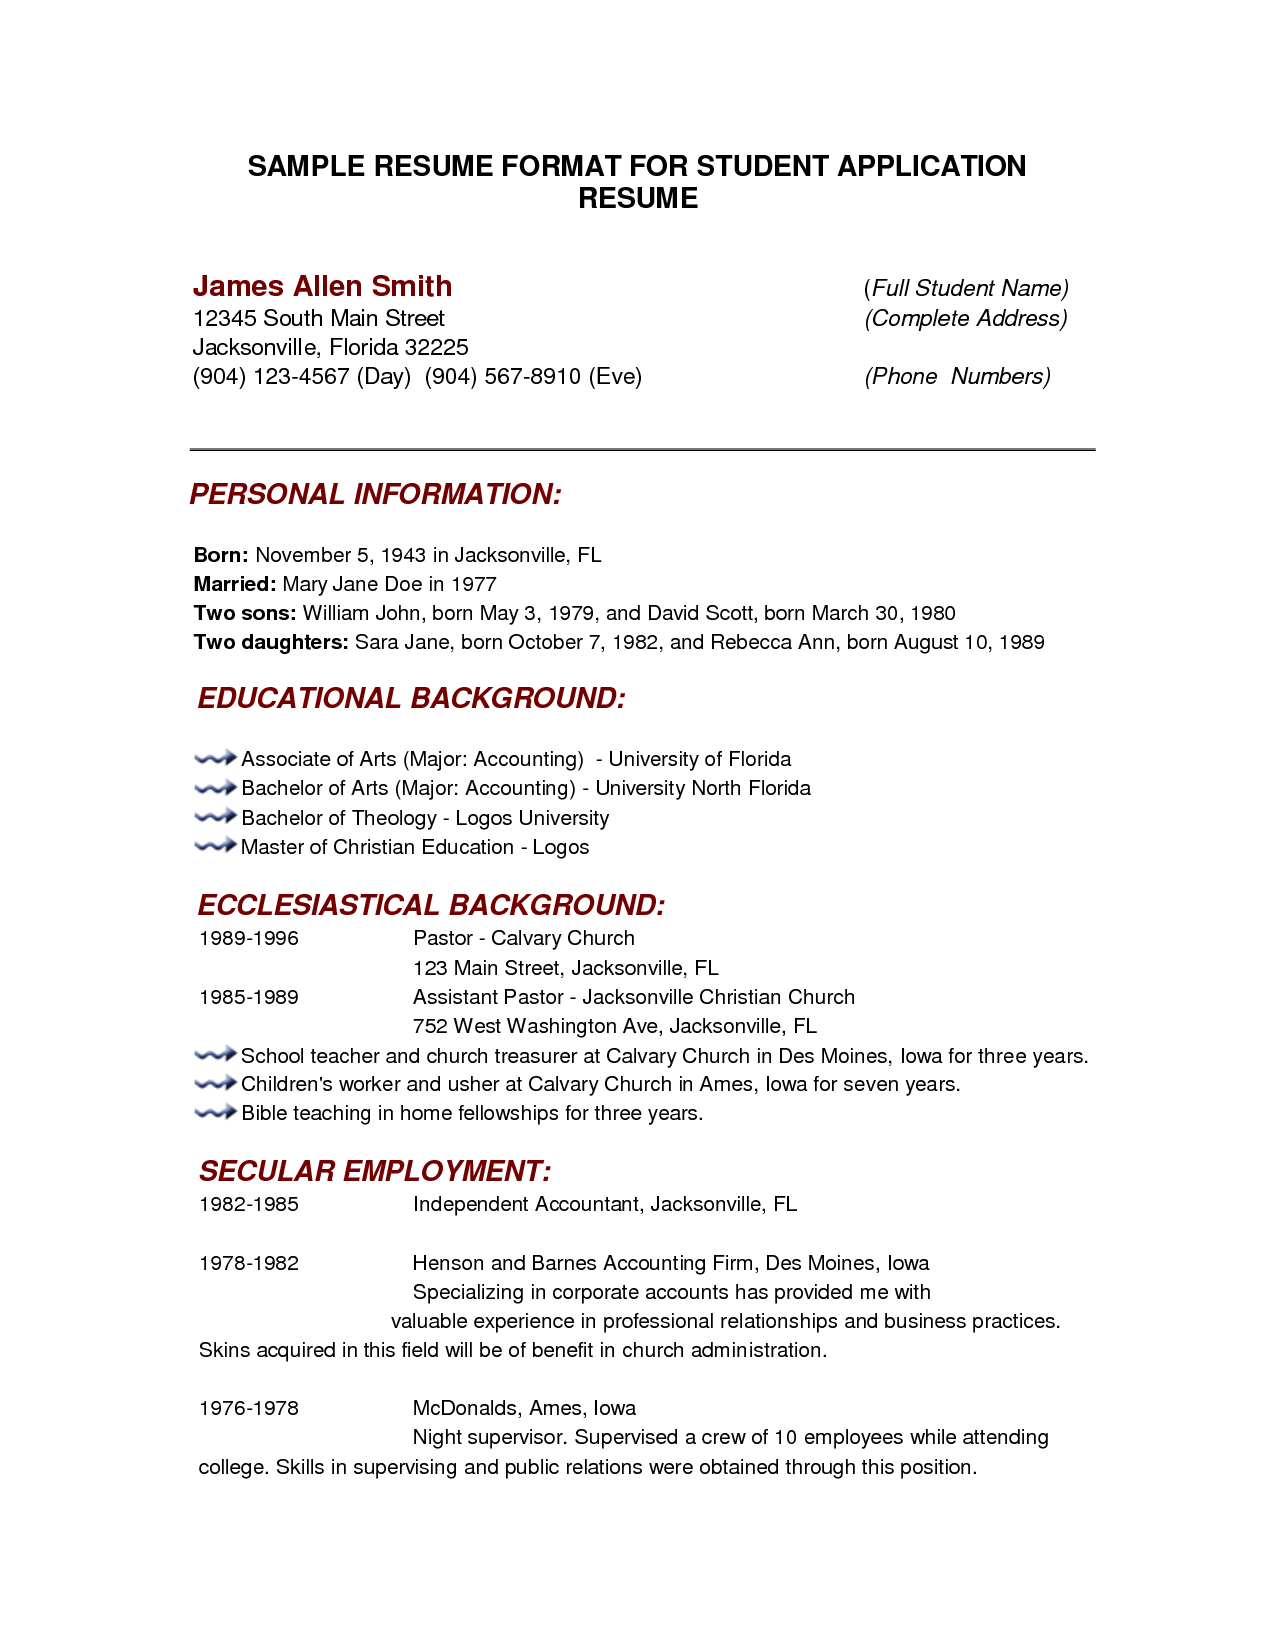 Resume Template For College Students   Http://www.resumecareer.info/